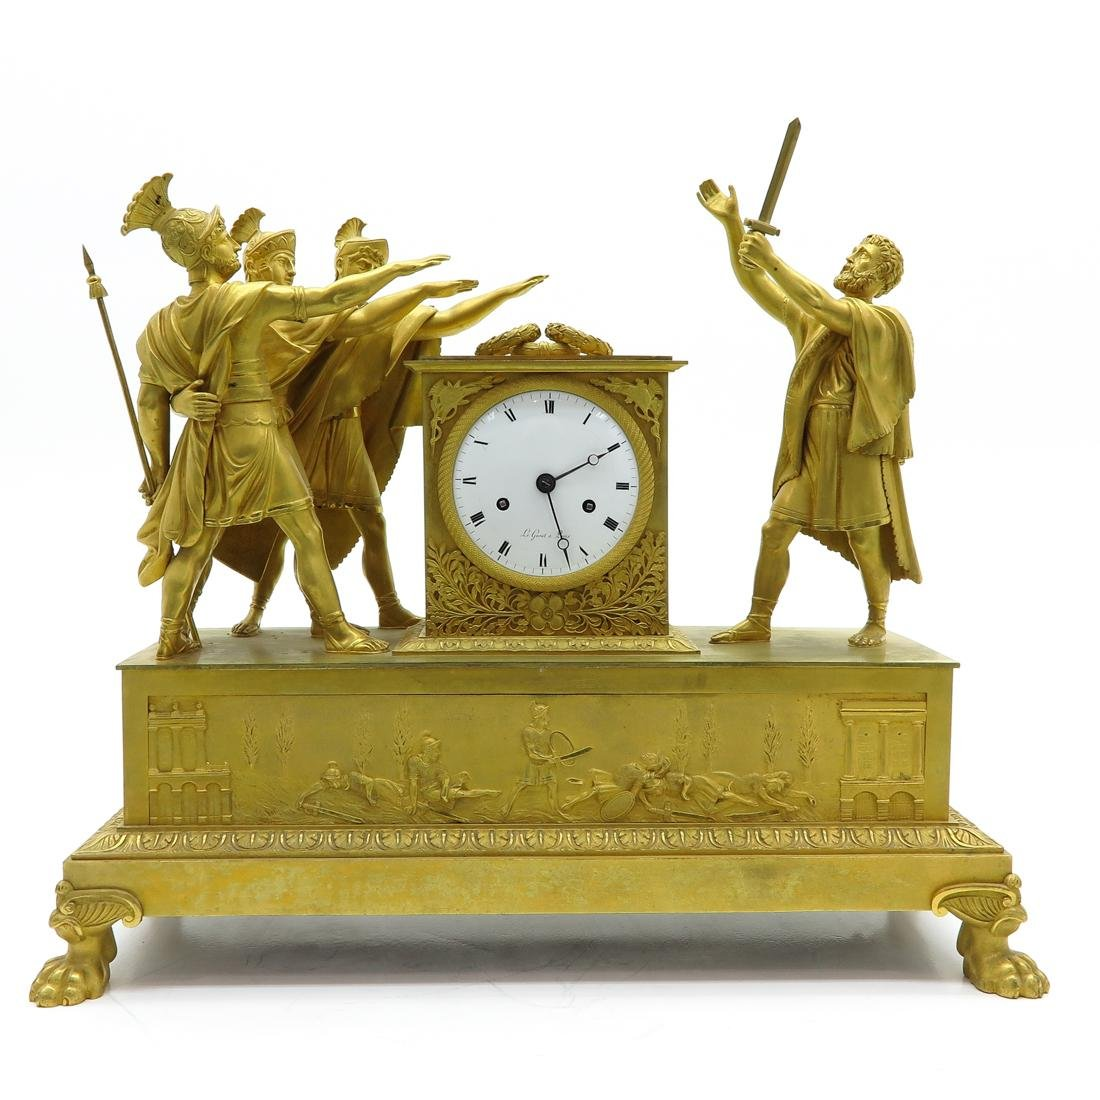 French Pendule Ca. 1800 Depicting The Oath of Horatius